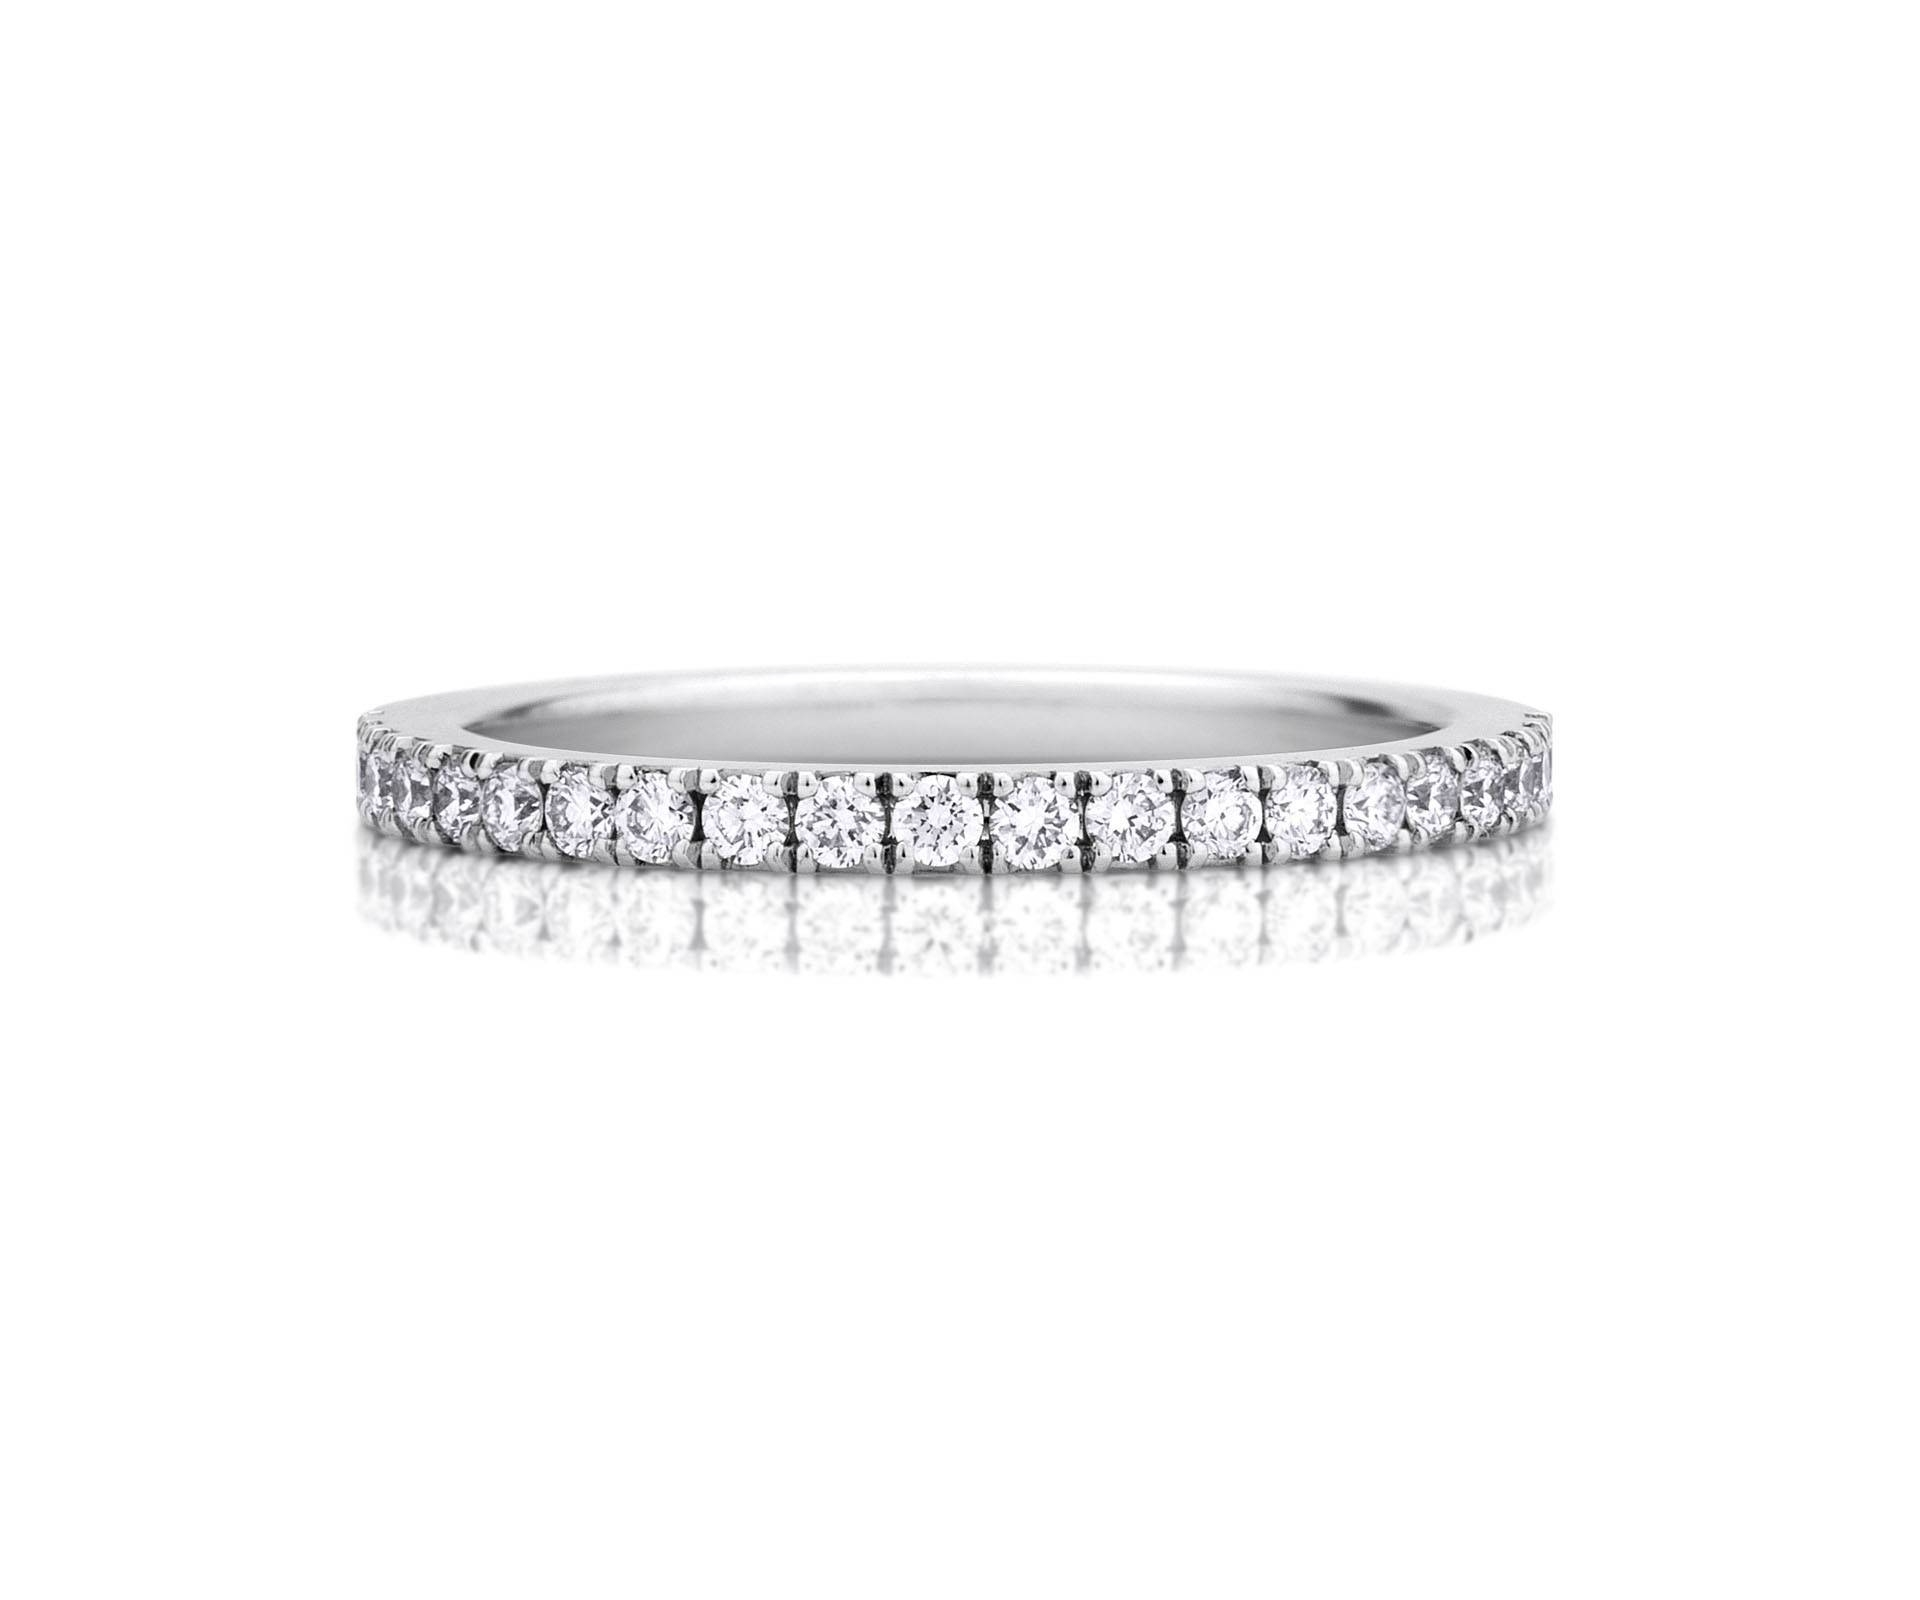 Diamond Wedding Rings & Bands | De Beers Throughout Floating Diamond Wedding Bands (View 7 of 15)